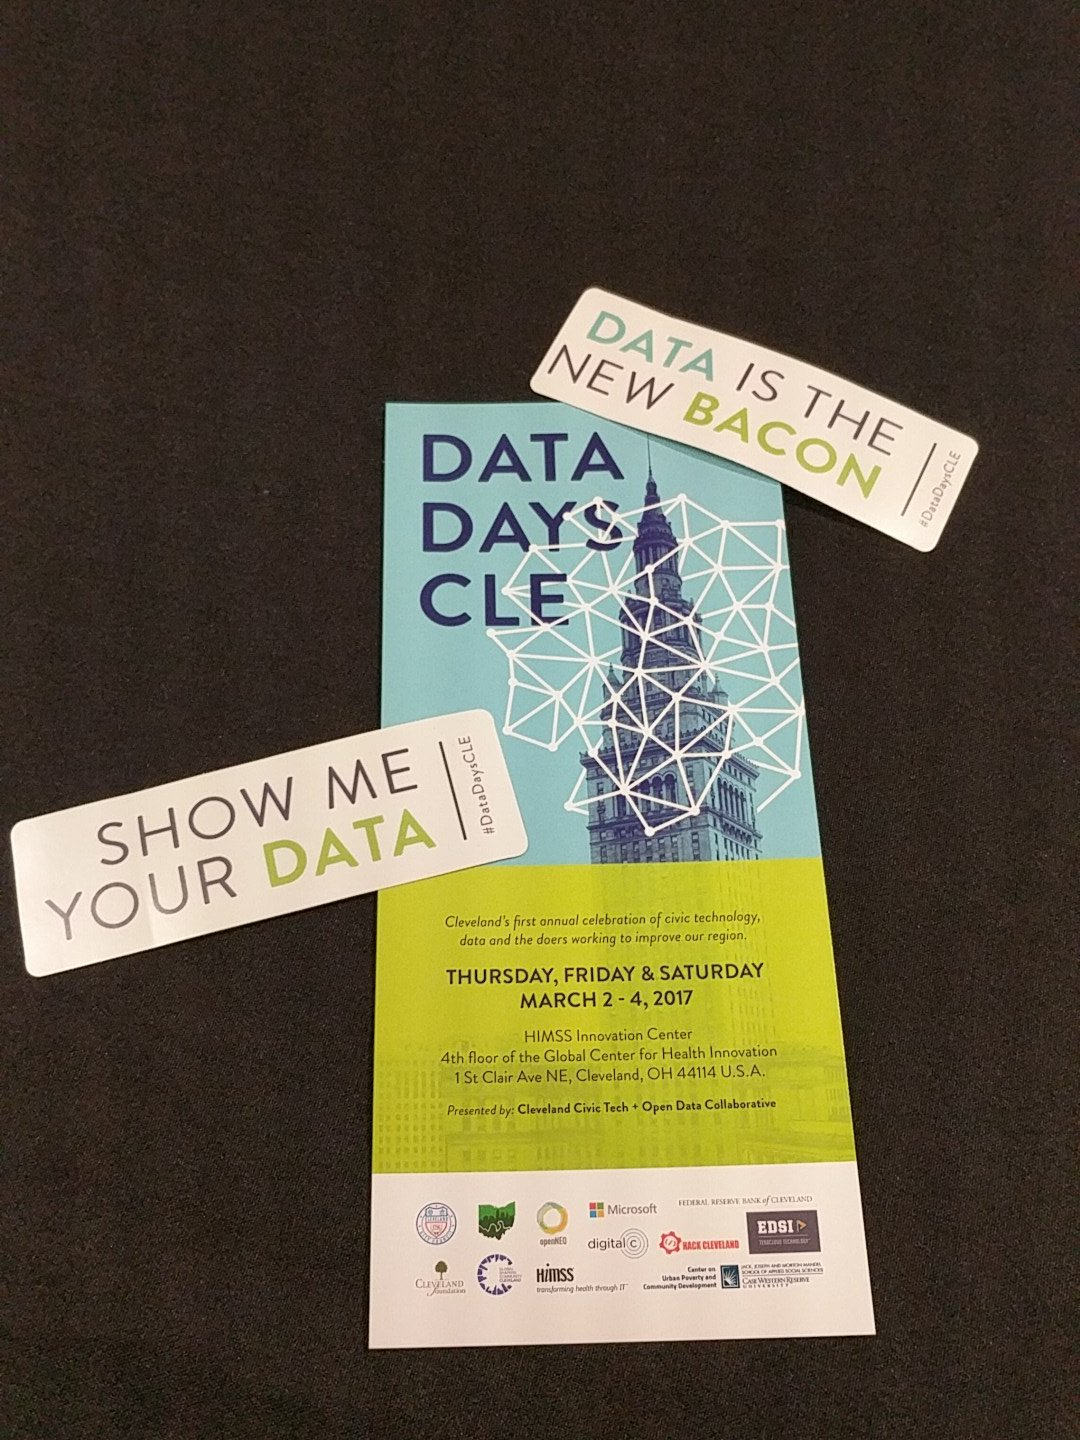 Pumped to celebrate #OpenDataDay2017 at #datadayscle! #showmeyourdata #dataisthenewbacon https://t.co/qVgqzXgxuL